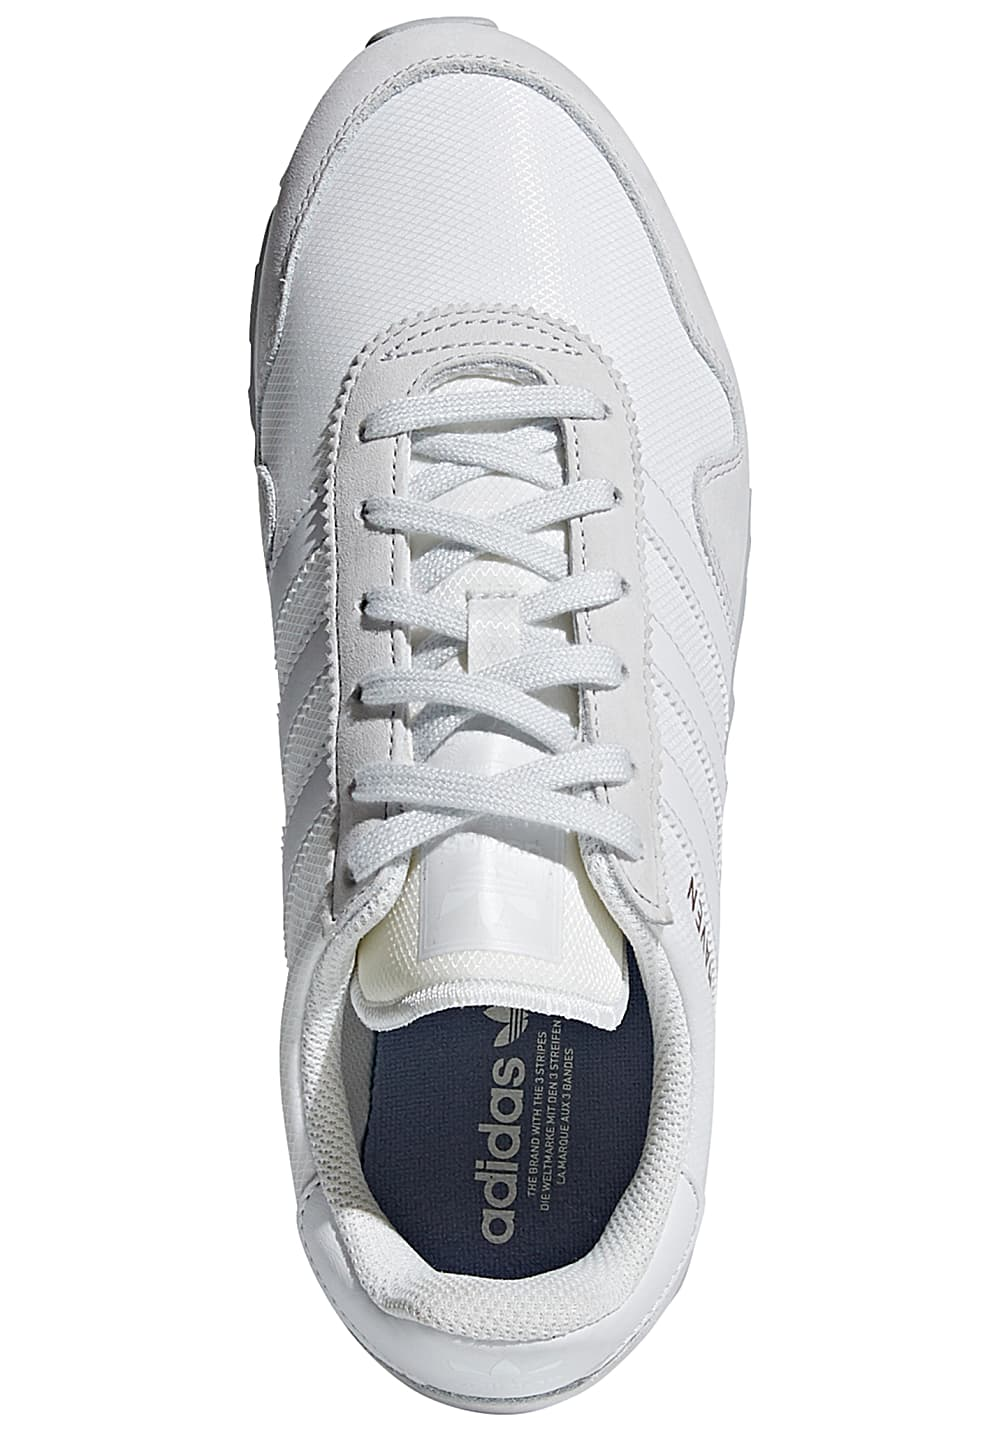 official photos 4ffae 354db ADIDAS ORIGINALS Haven - Sneakers for Women - White - Planet Sports